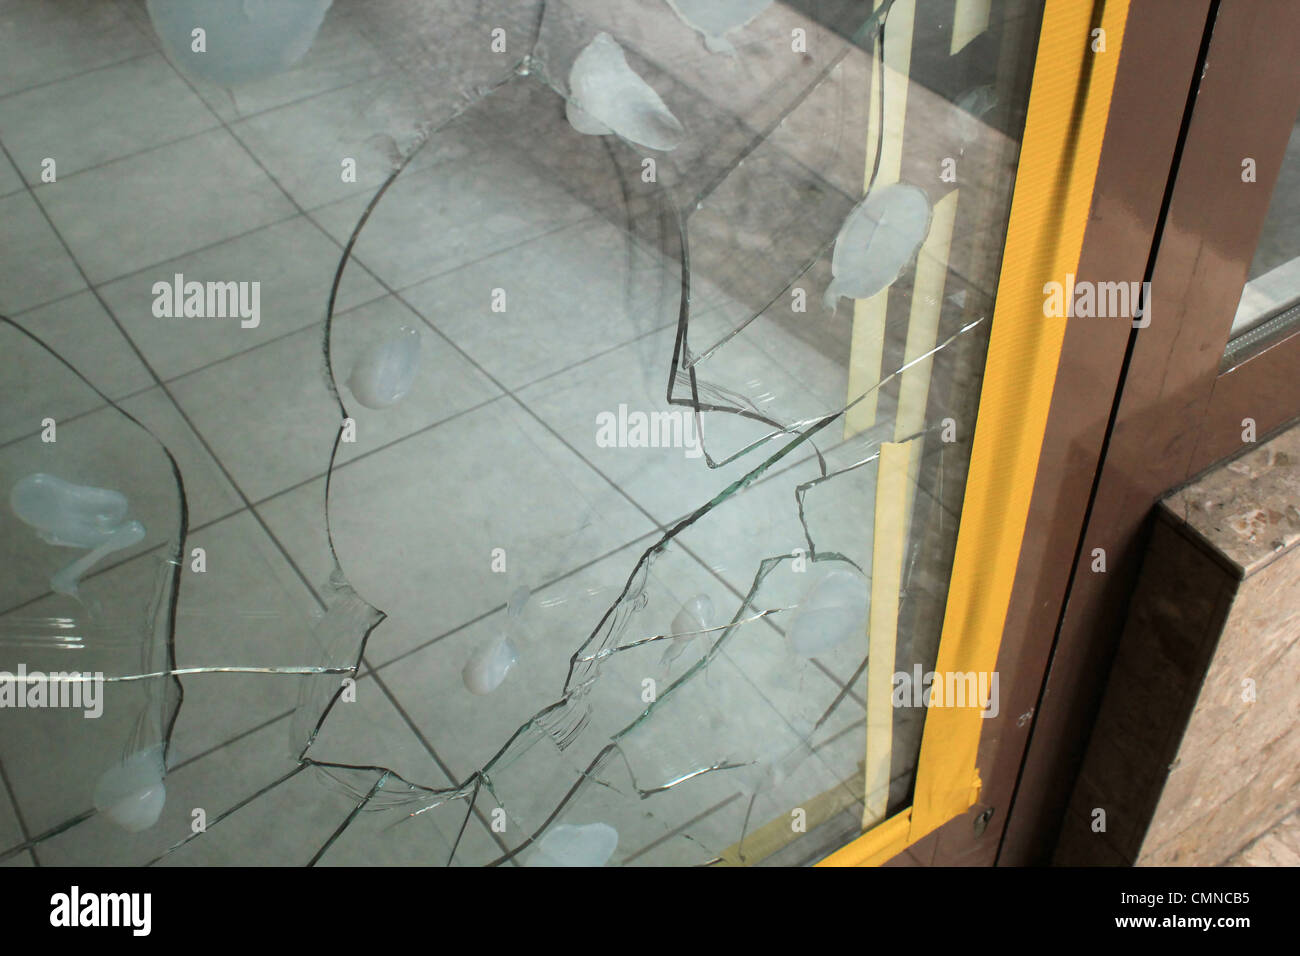 Door Broken Glass Stockfotos & Door Broken Glass Bilder - Alamy